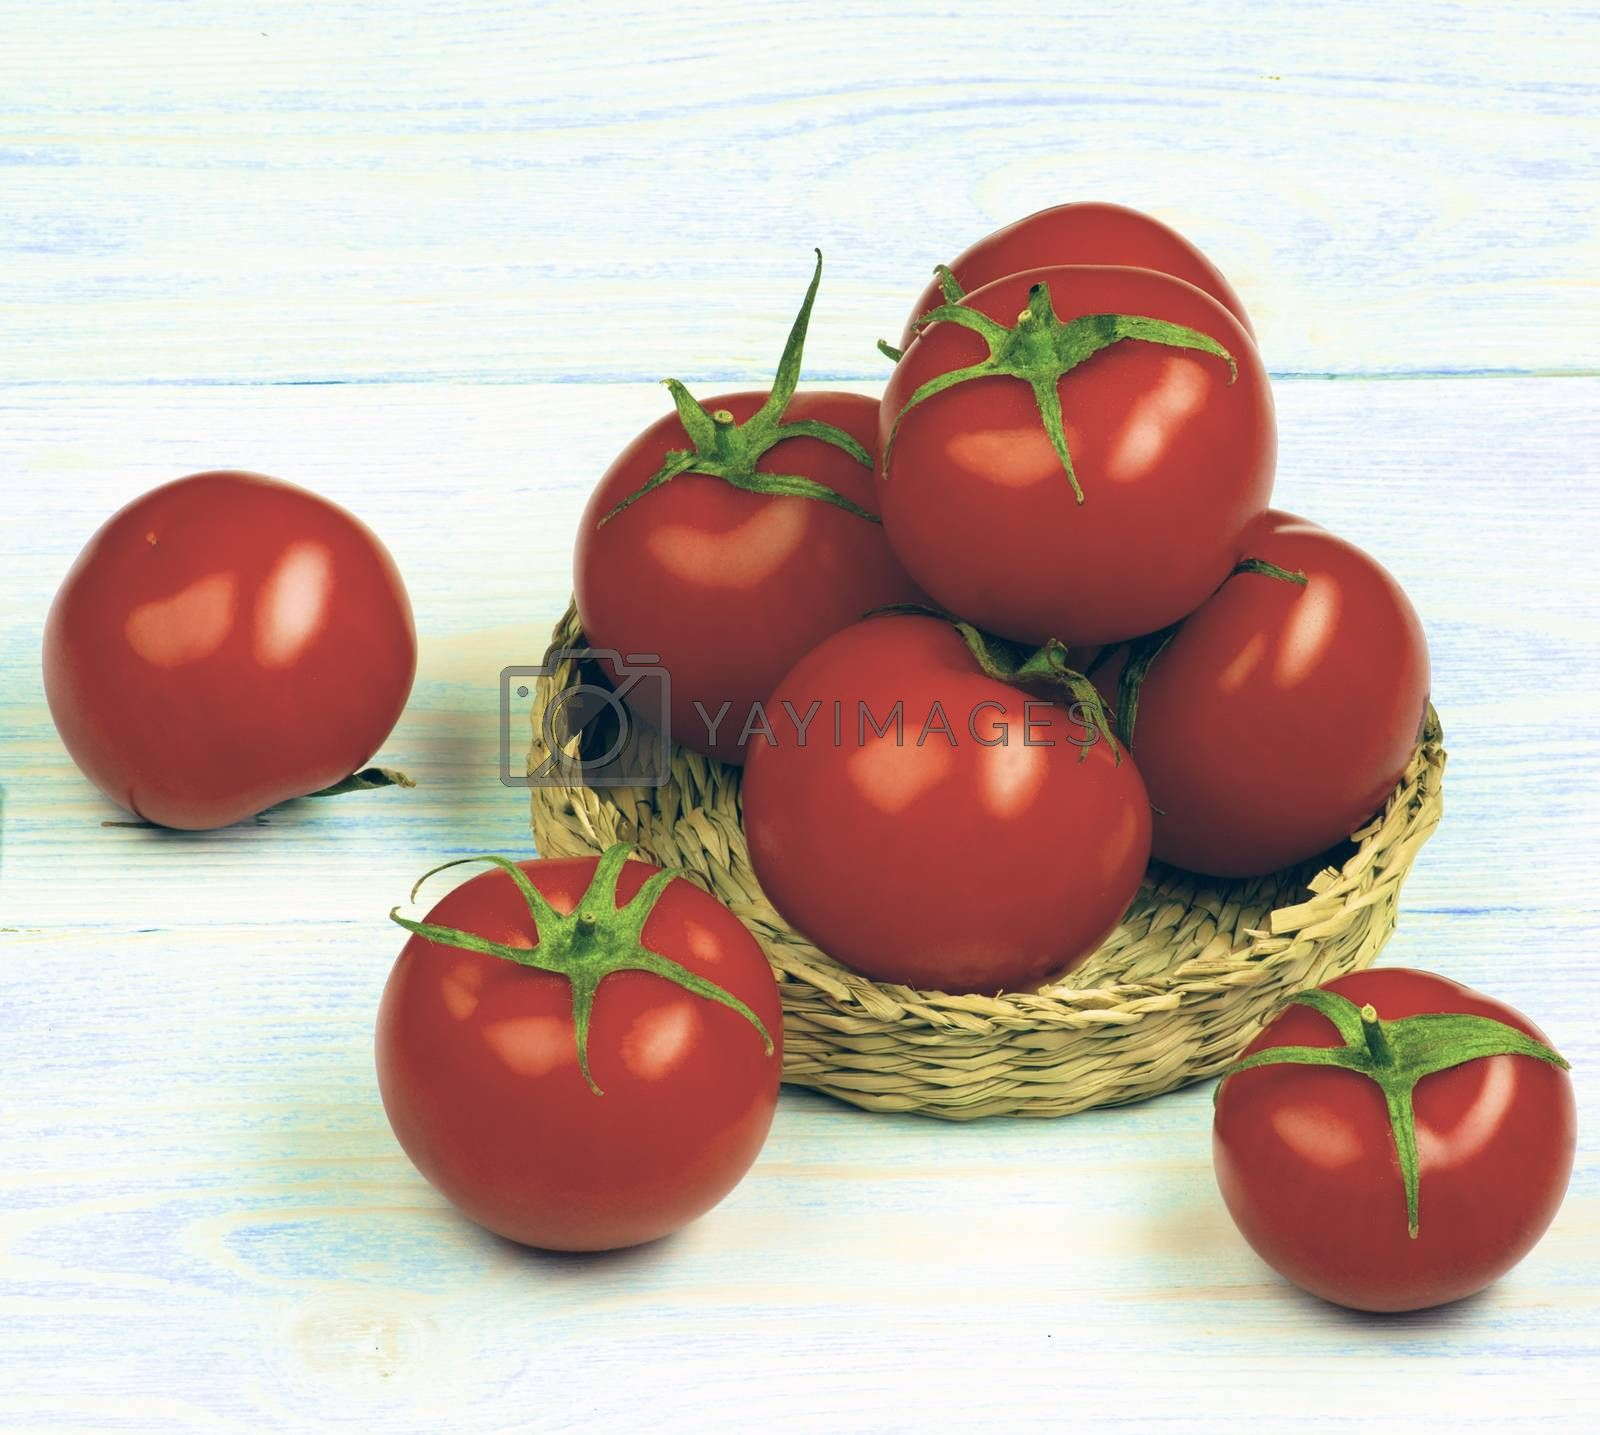 Heap of Ripe Raw Red Tomatoes with Stems in Wicker Plate closeup on Light Wooden background